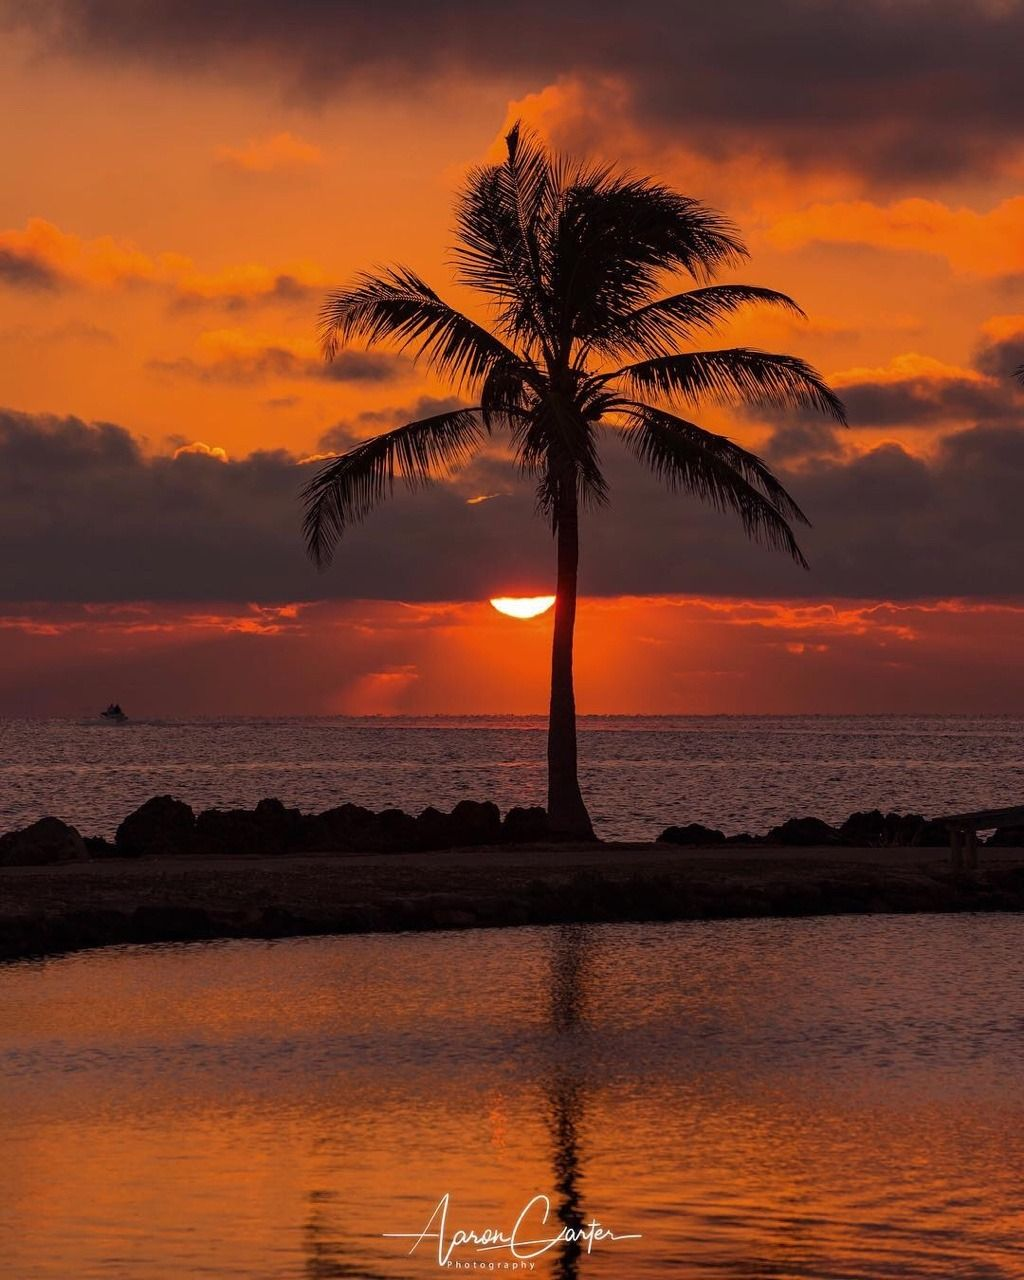 Biscayne Bay, Florida By Aaron Carter